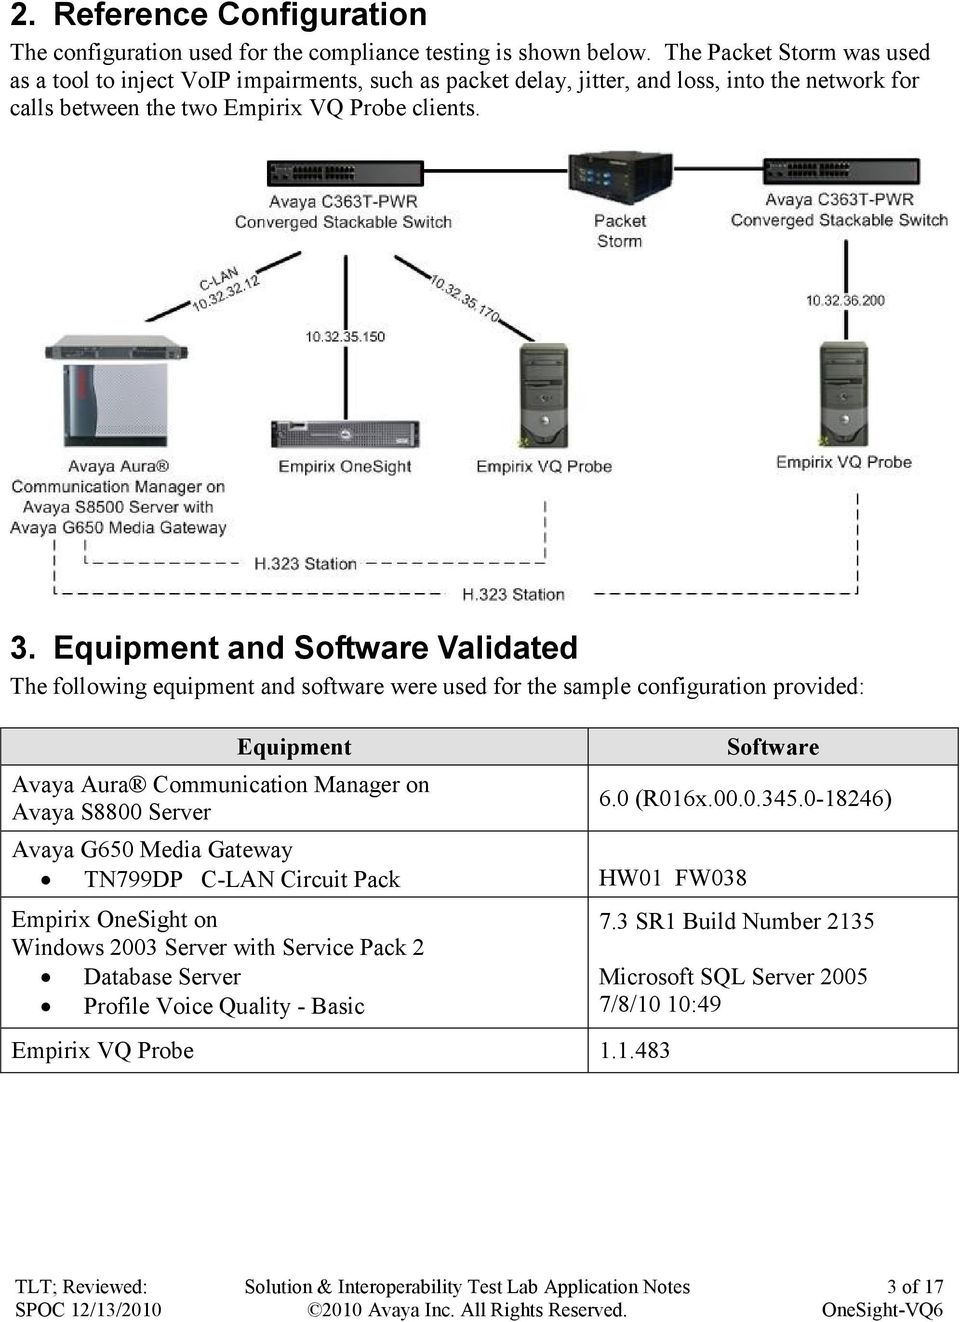 Equipment and Software Validated The following equipment and software were used for the sample configuration provided: Equipment Avaya Aura Communication Manager on Avaya S8800 Server